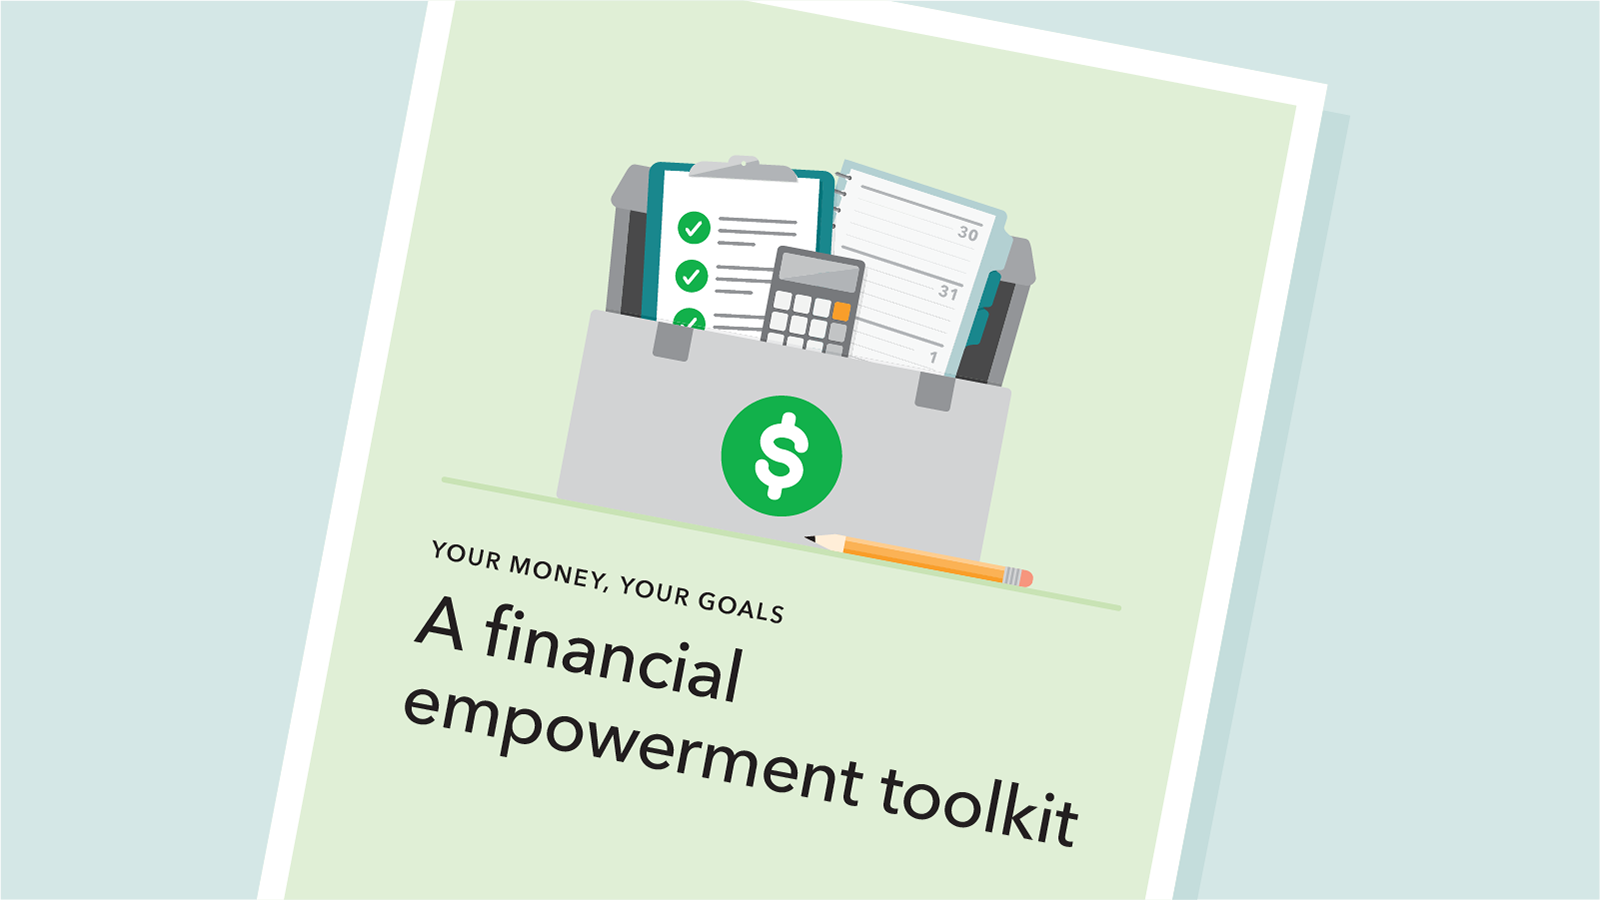 Your Money, Your Goals: A Financial Empowerment Toolkit